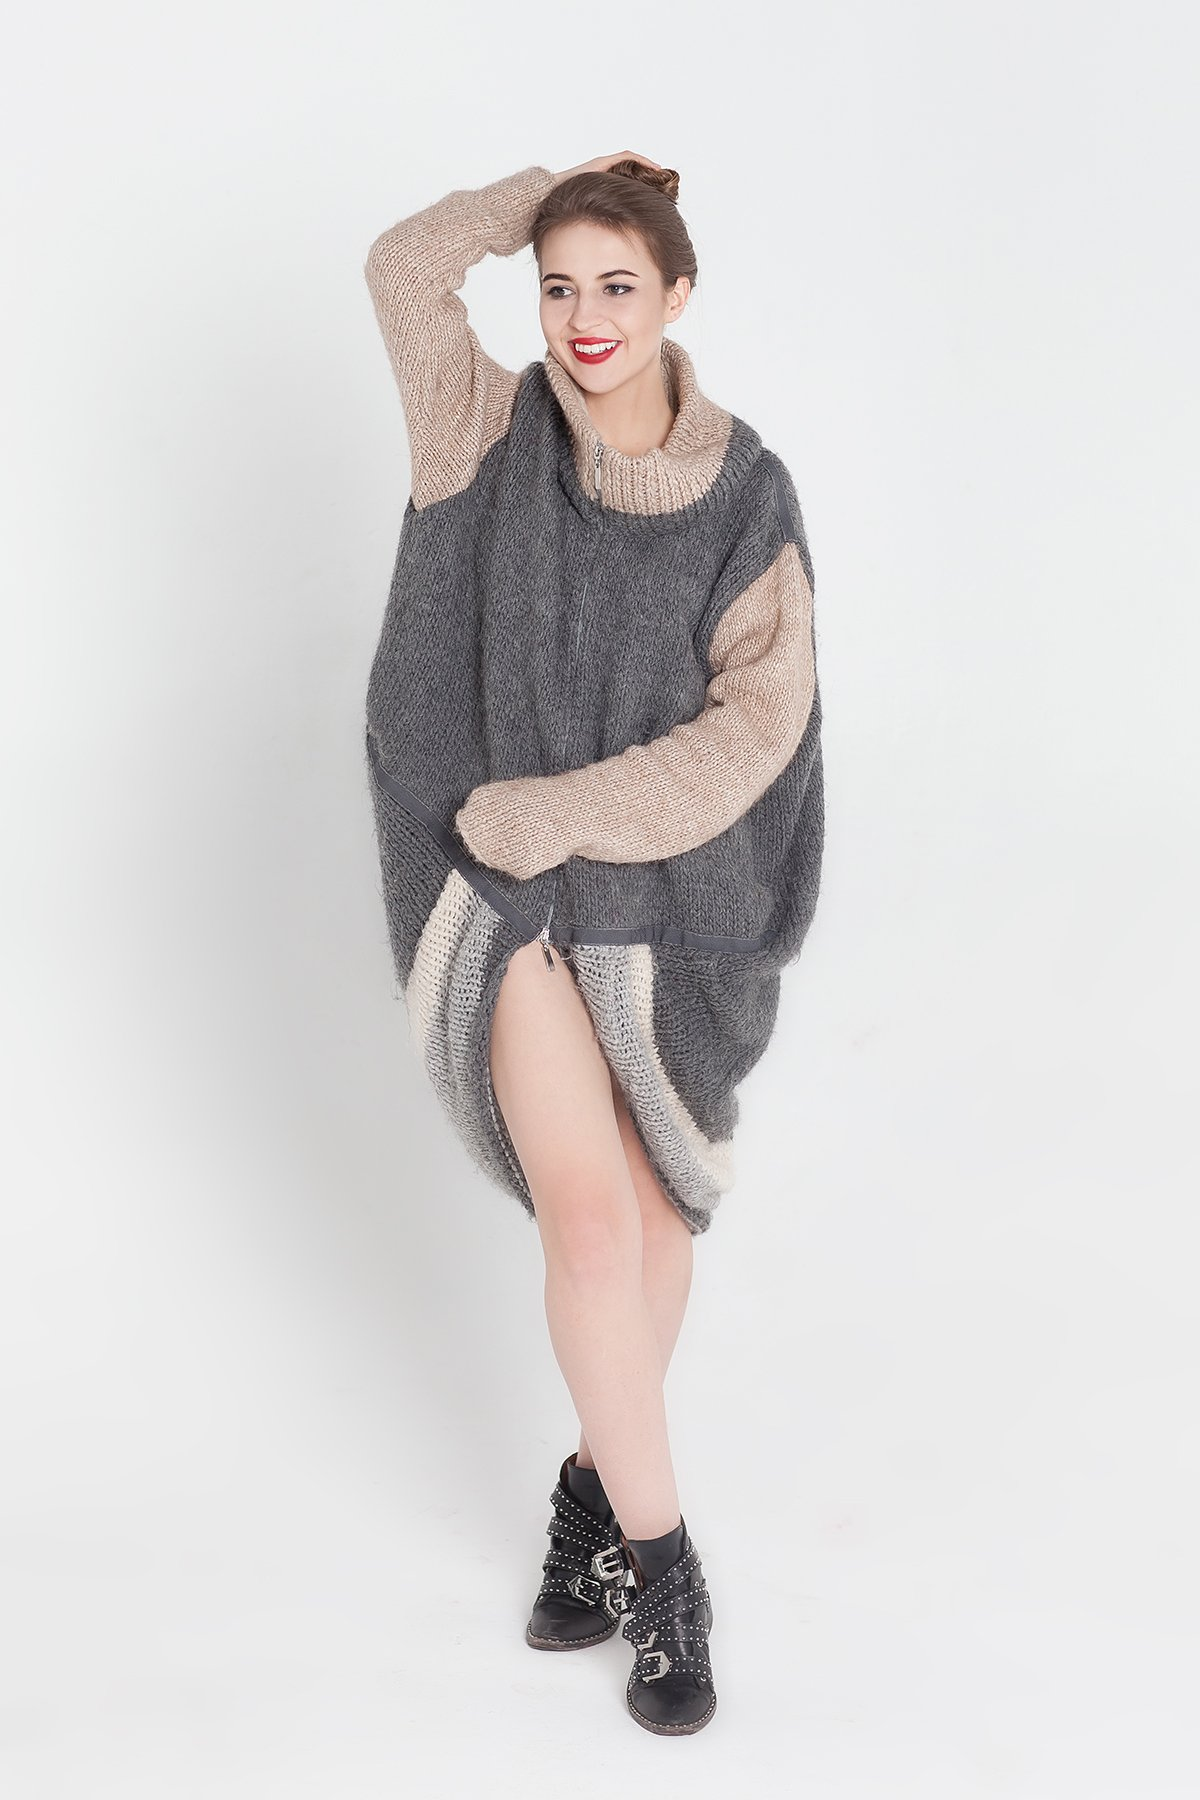 Zipped Sweater Super oversized cardigan Cocoon sweater Zipped cardigan Zip cardigan Knitted wrap Open front sweater Knitted coat Gray knit